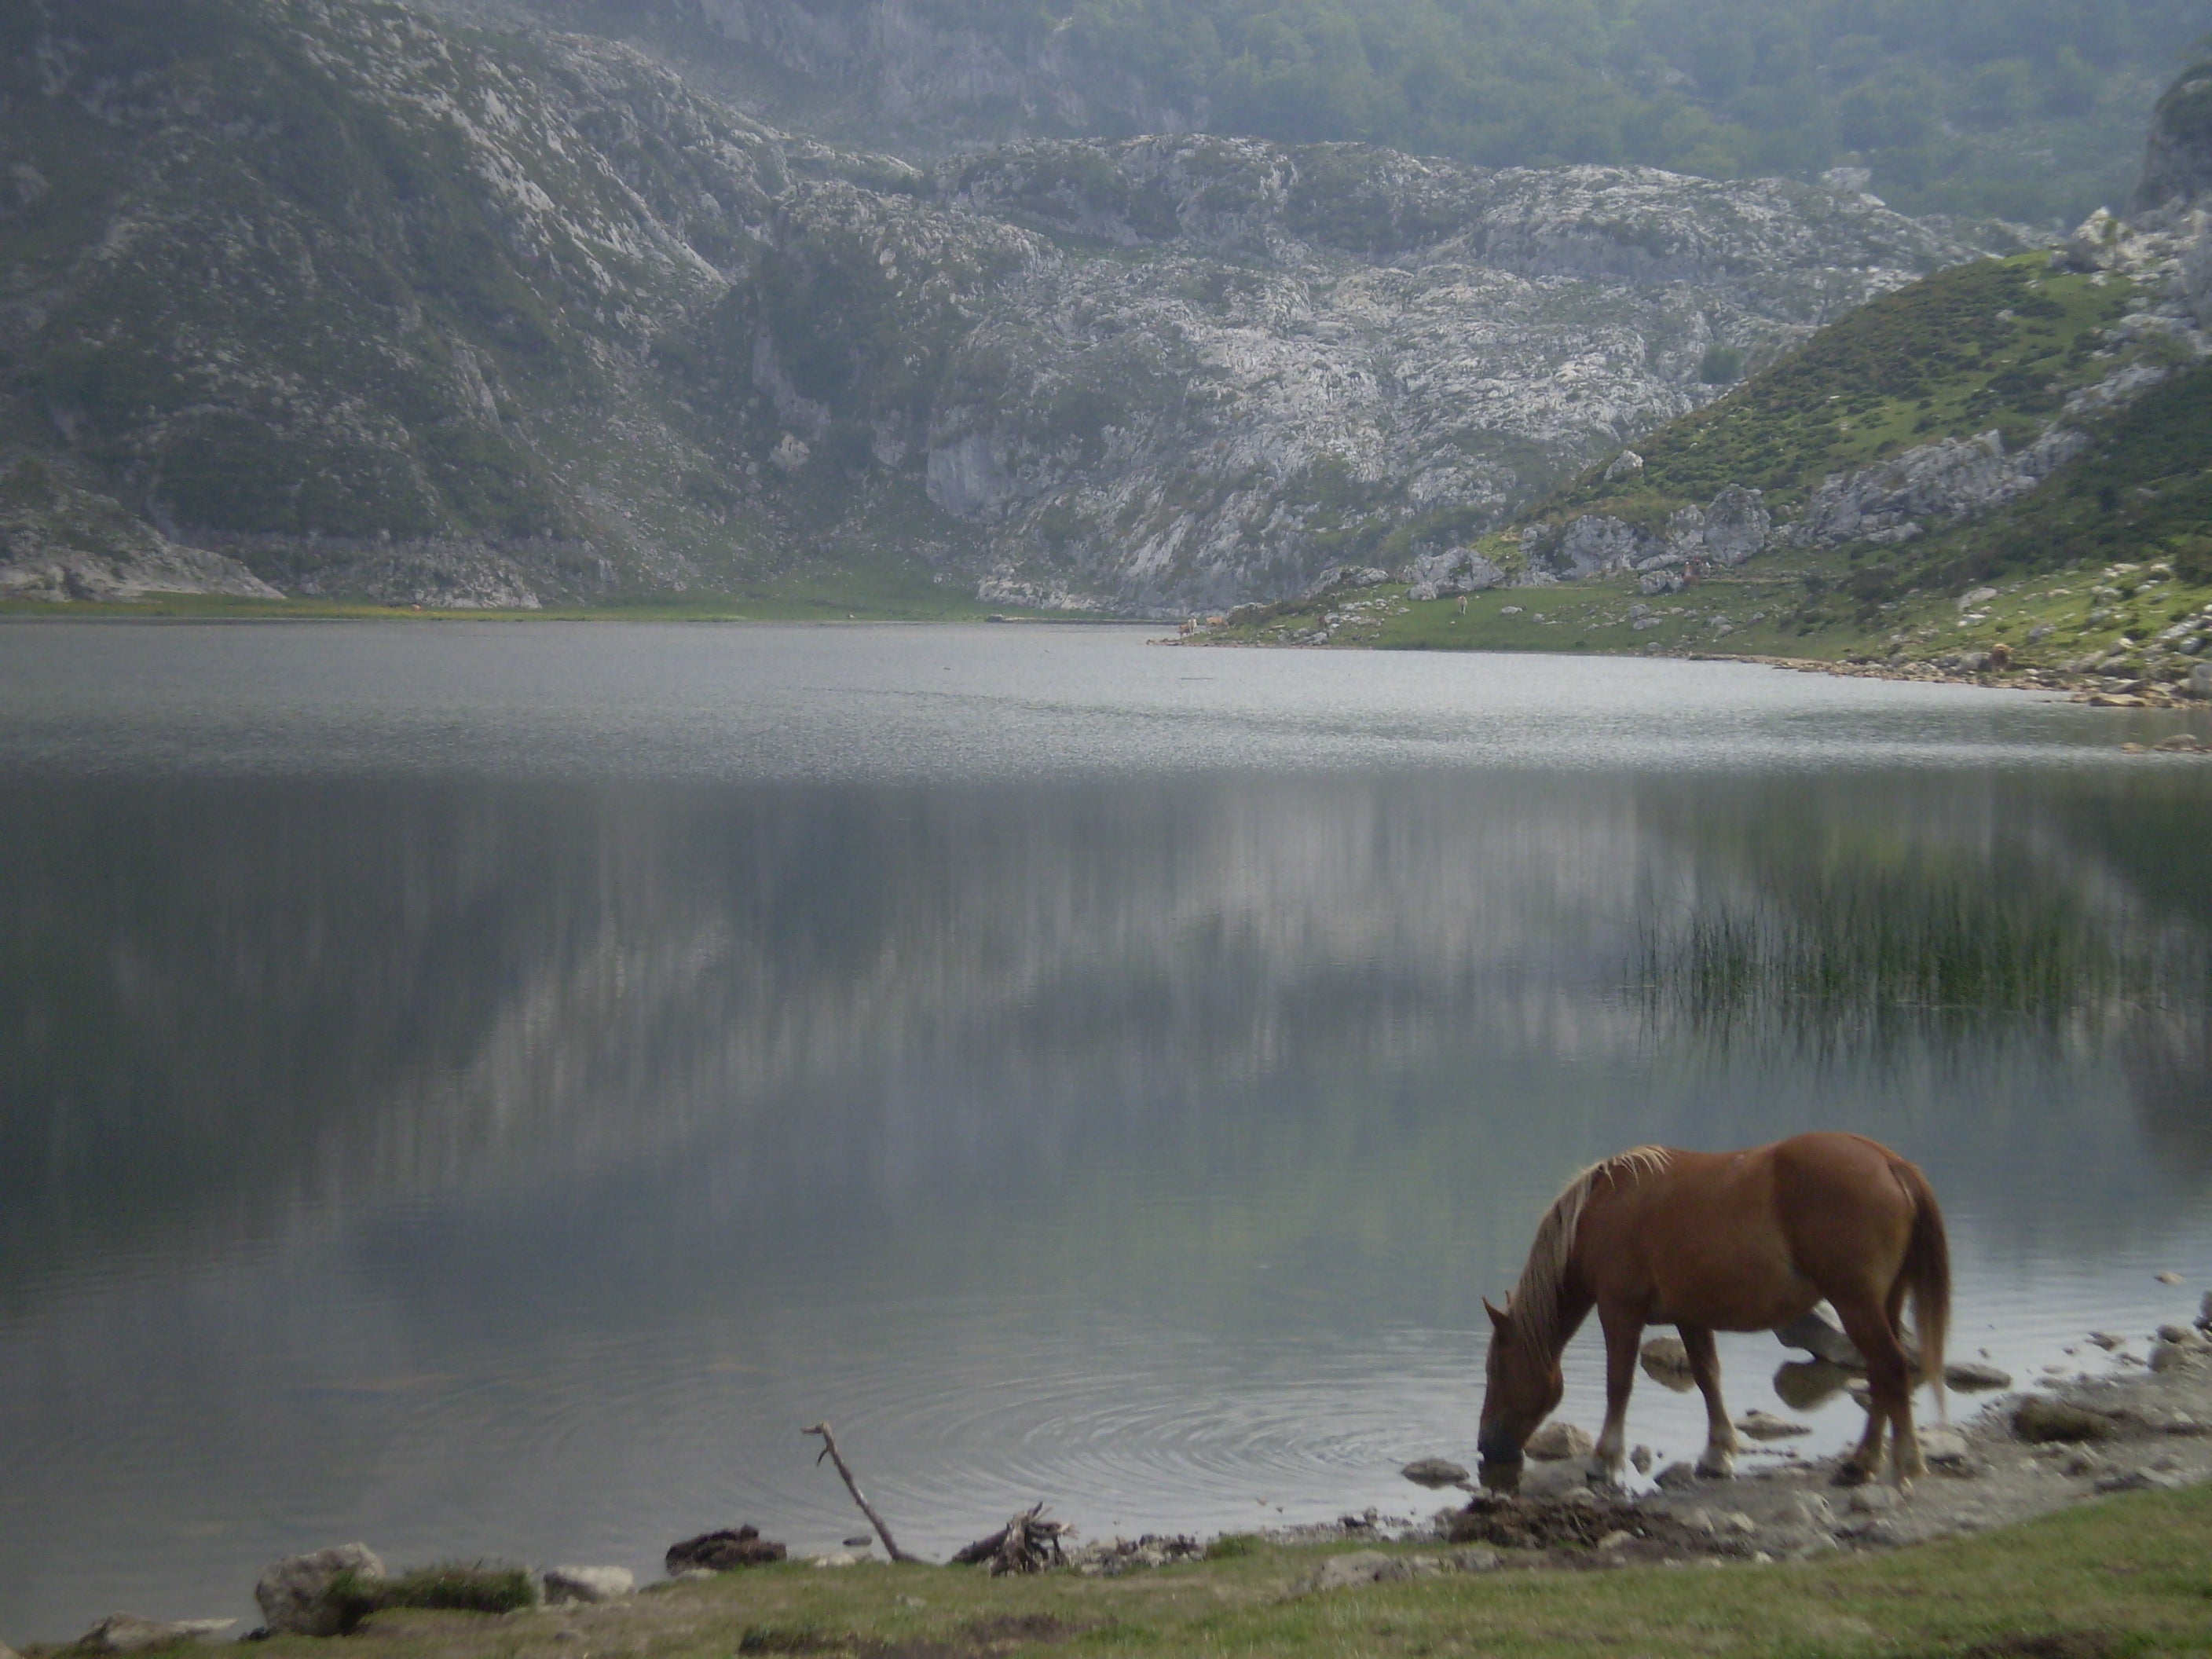 Horse in The Lakes of Covadonga - Enol and Ercina lakes